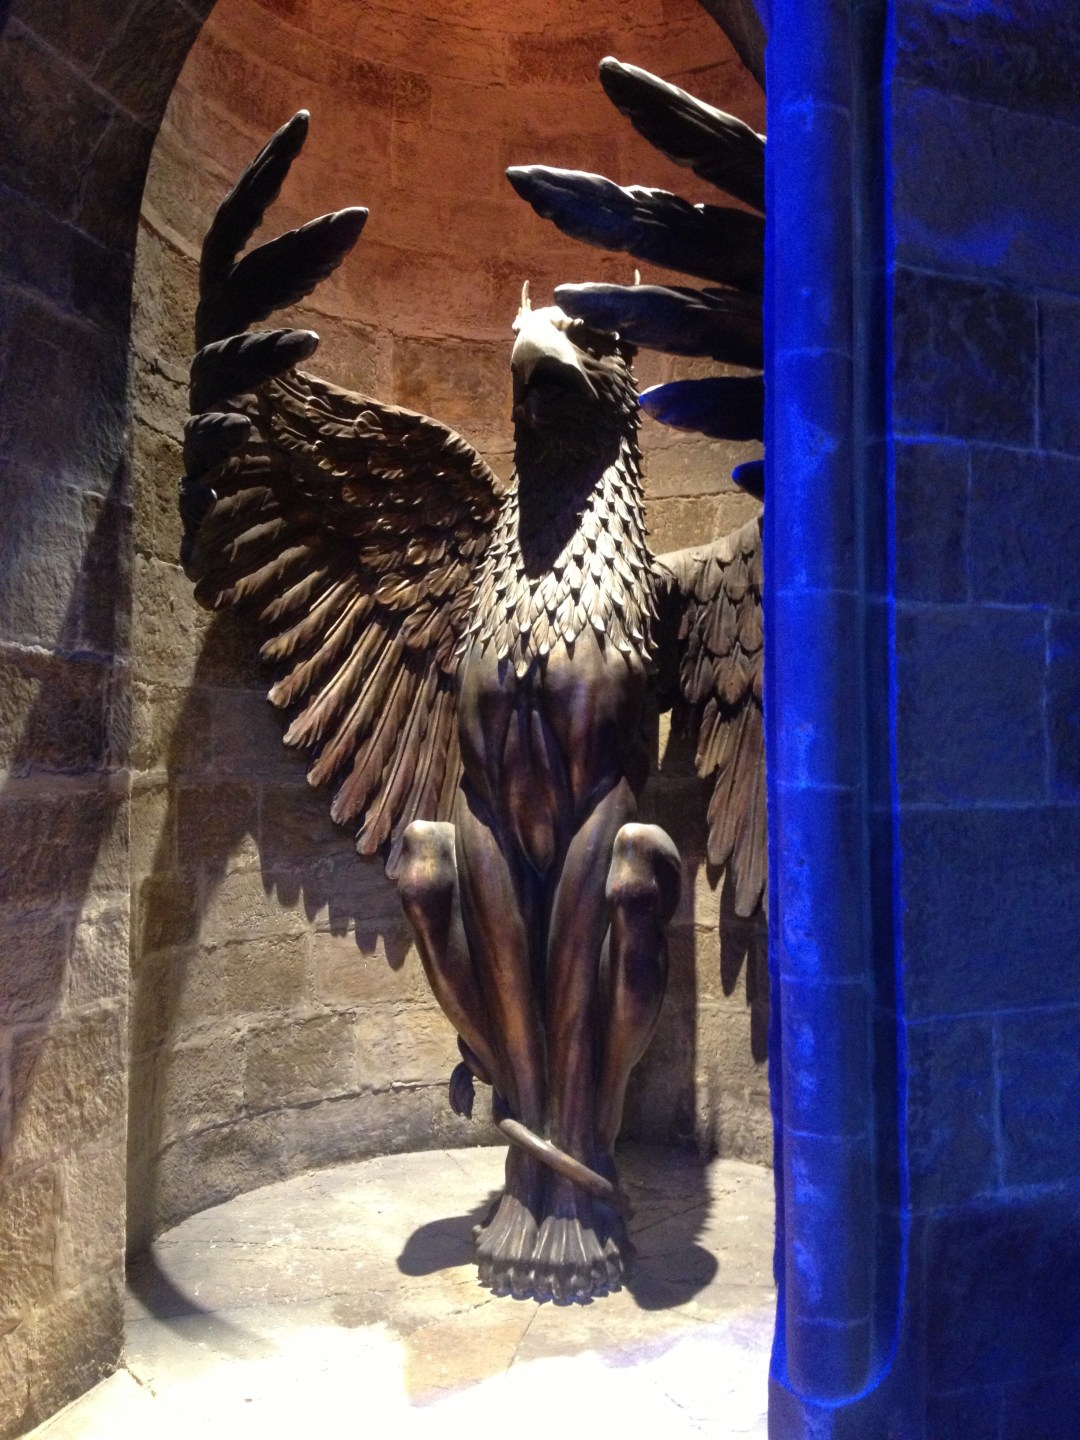 Warner Brothers Studio: The Making of Harry Potter Tour